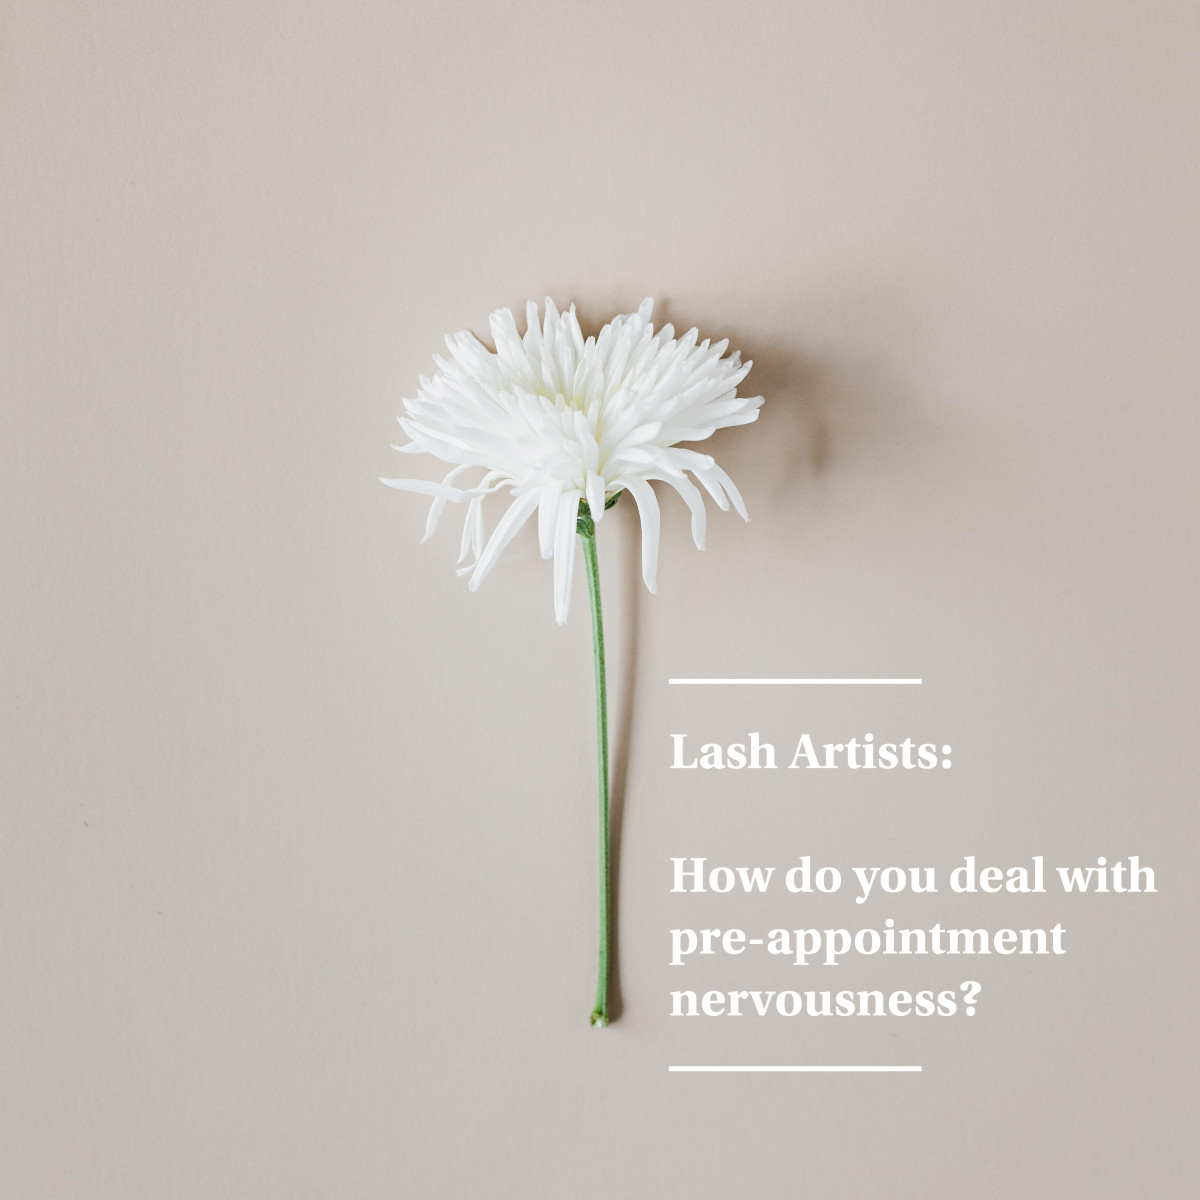 Share your best tips for managing your anxiety before eyelash extensions appointments in the comments.